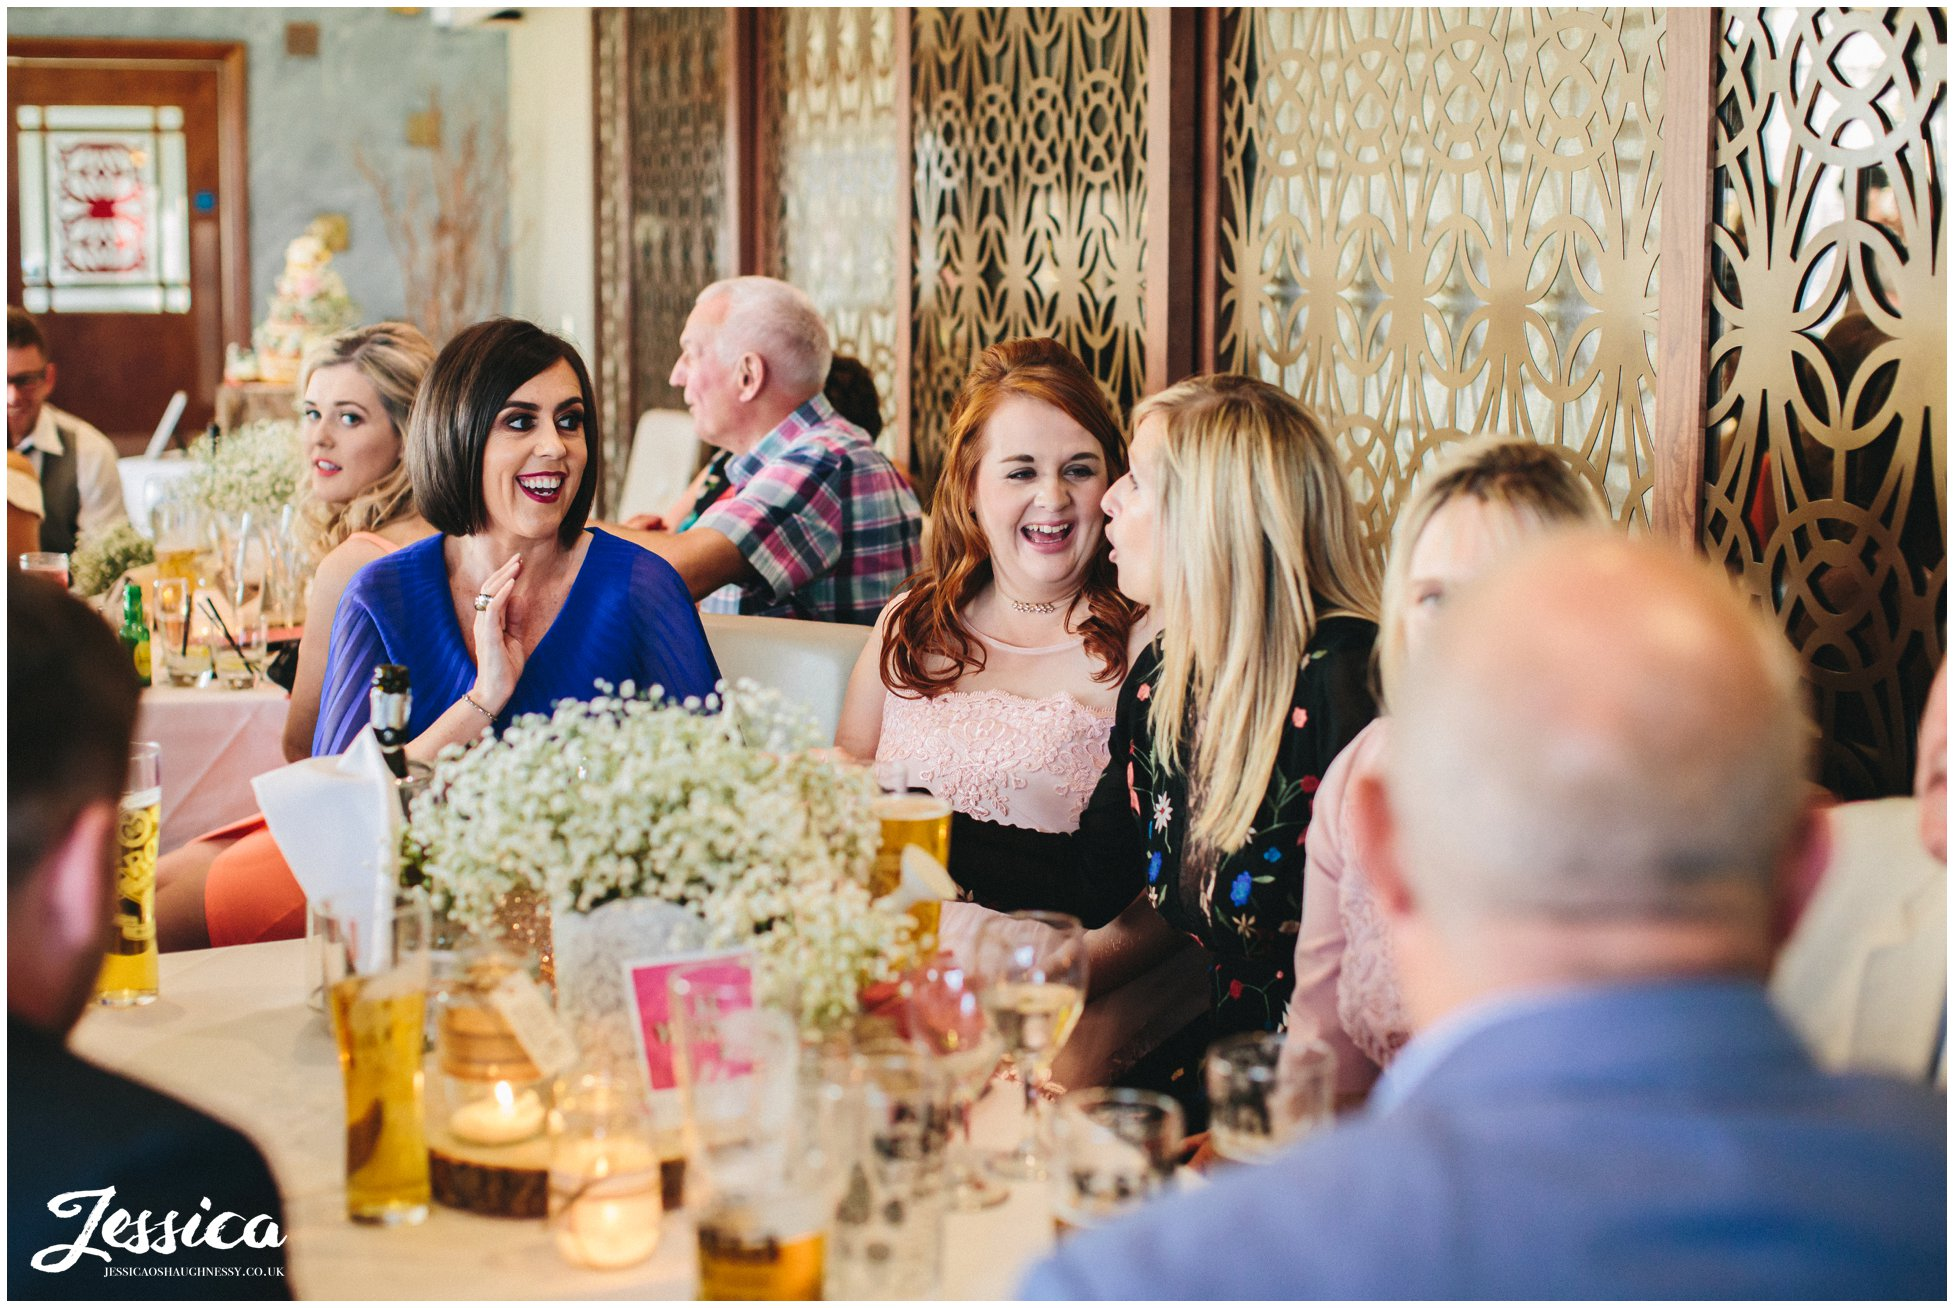 guests enjoying the wedding reception on the wirral